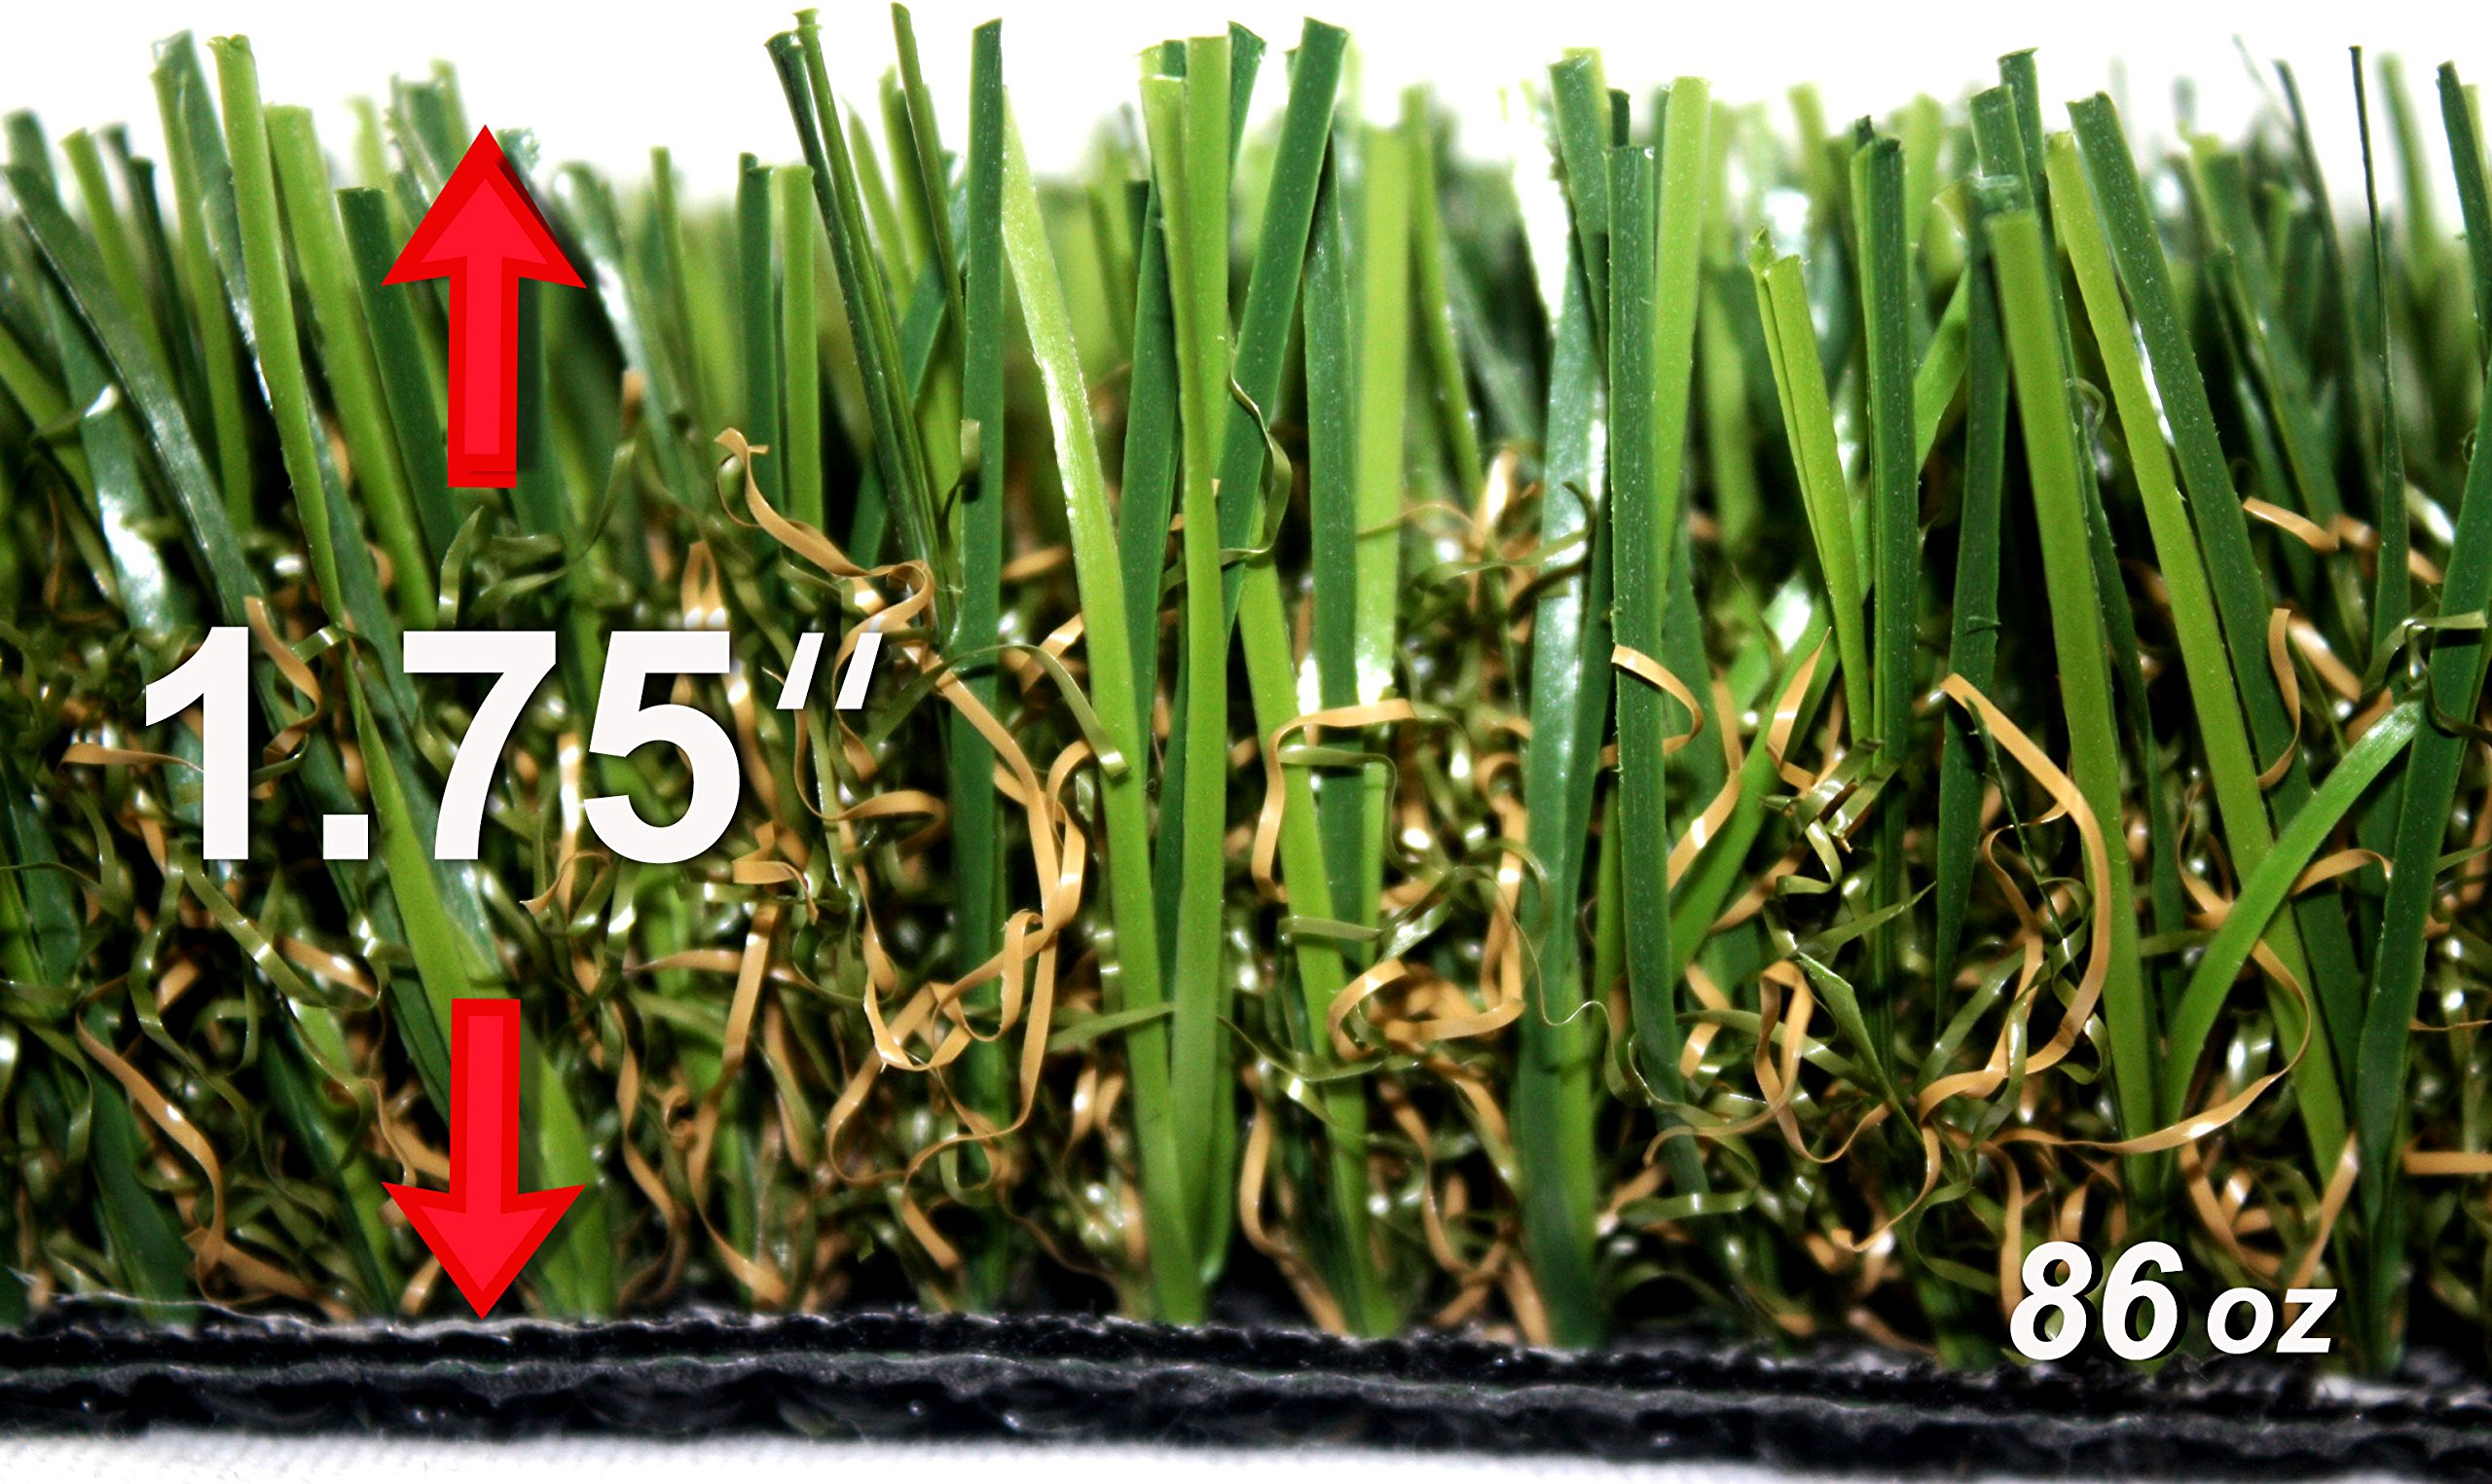 StarPro SPG-80 $2.87/sf ''Greater'' Centipede SW Ultra Natural Artificial Synthetic Grass Lawn Turf, 18ftx15ft by StarPro Greens